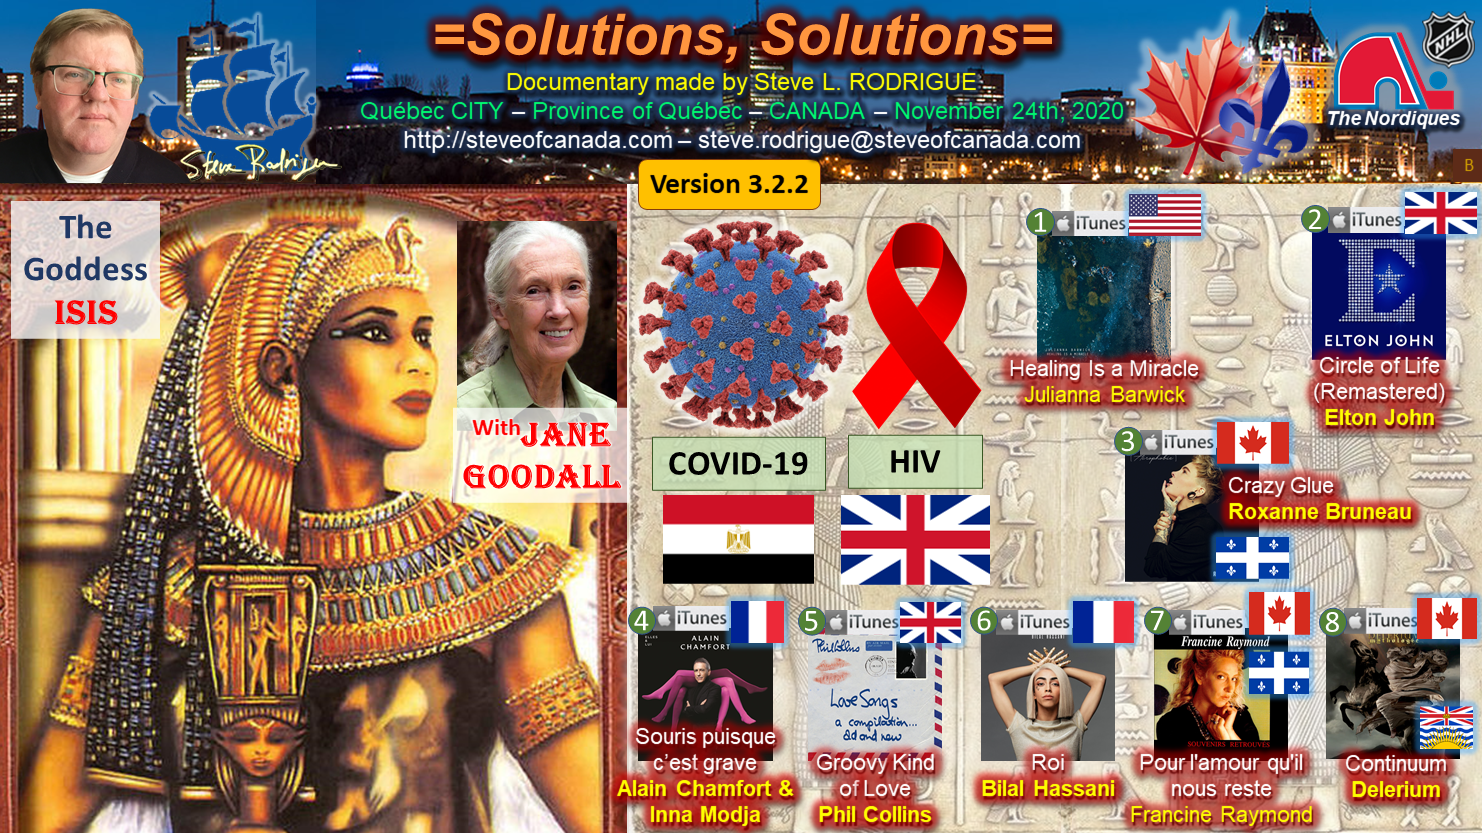 Origins and Solutions to COVID-19 and to HIV